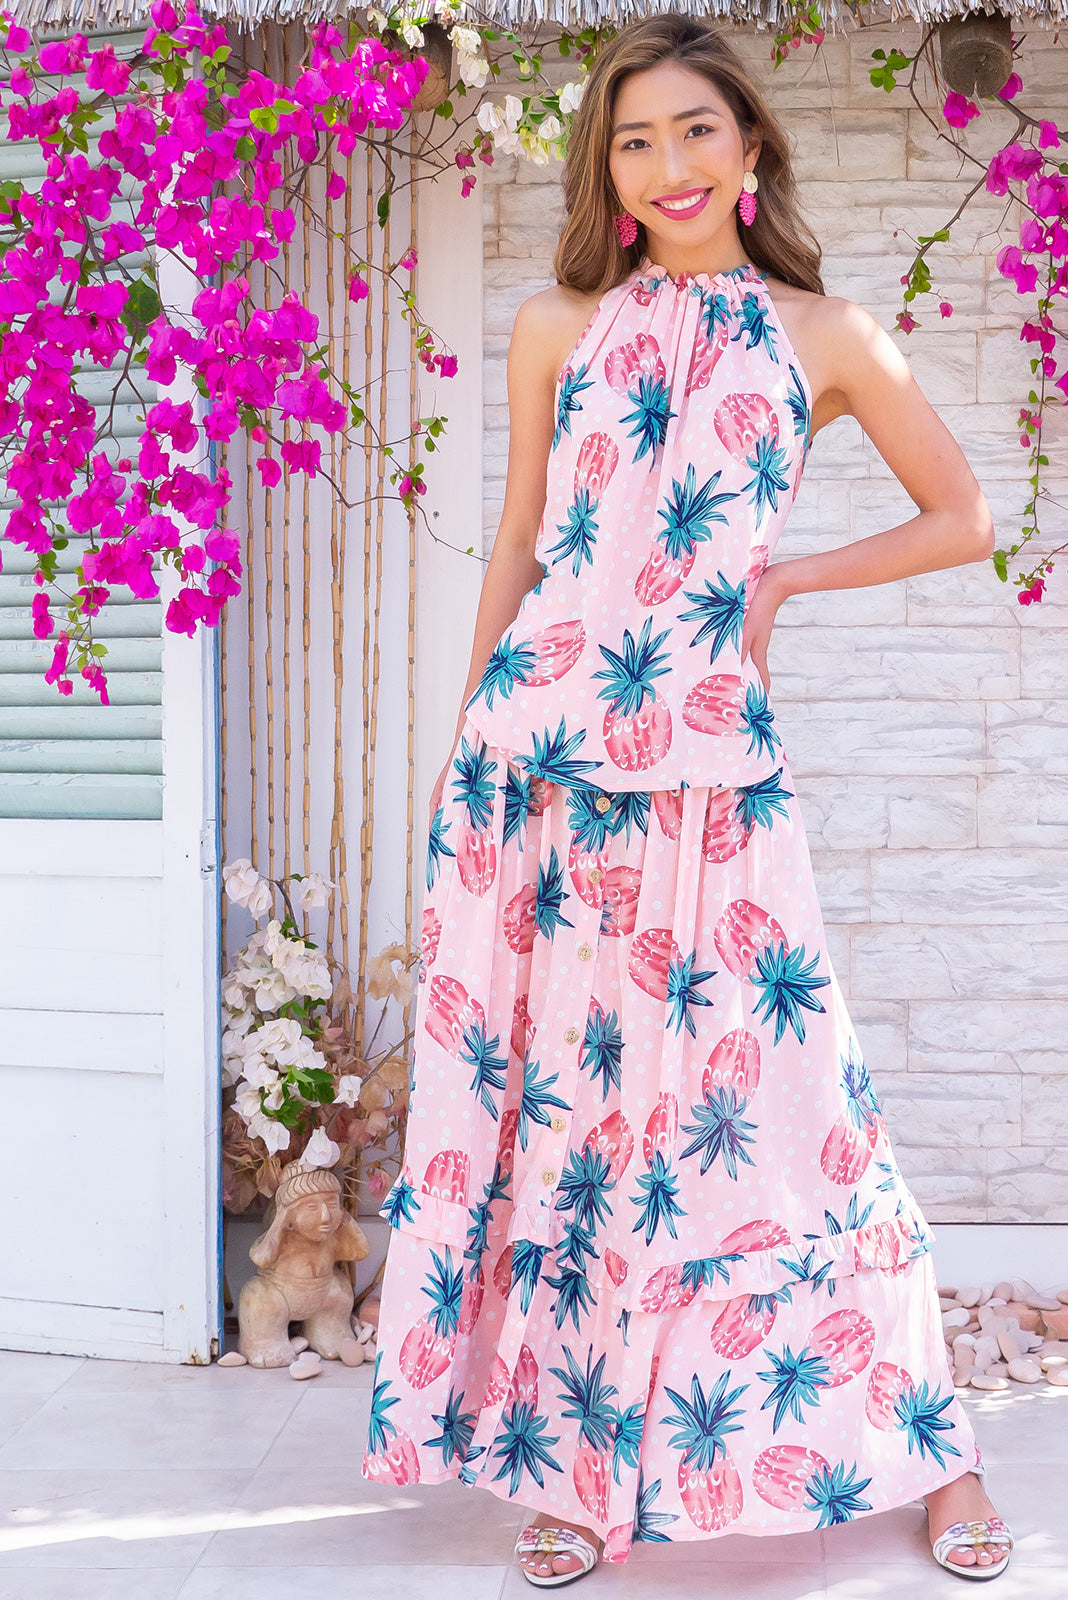 Coolum Pink Pine Top, high neck halter design in 100% rayon - ideal for warm spring/summer days. Pair with matching skirt.